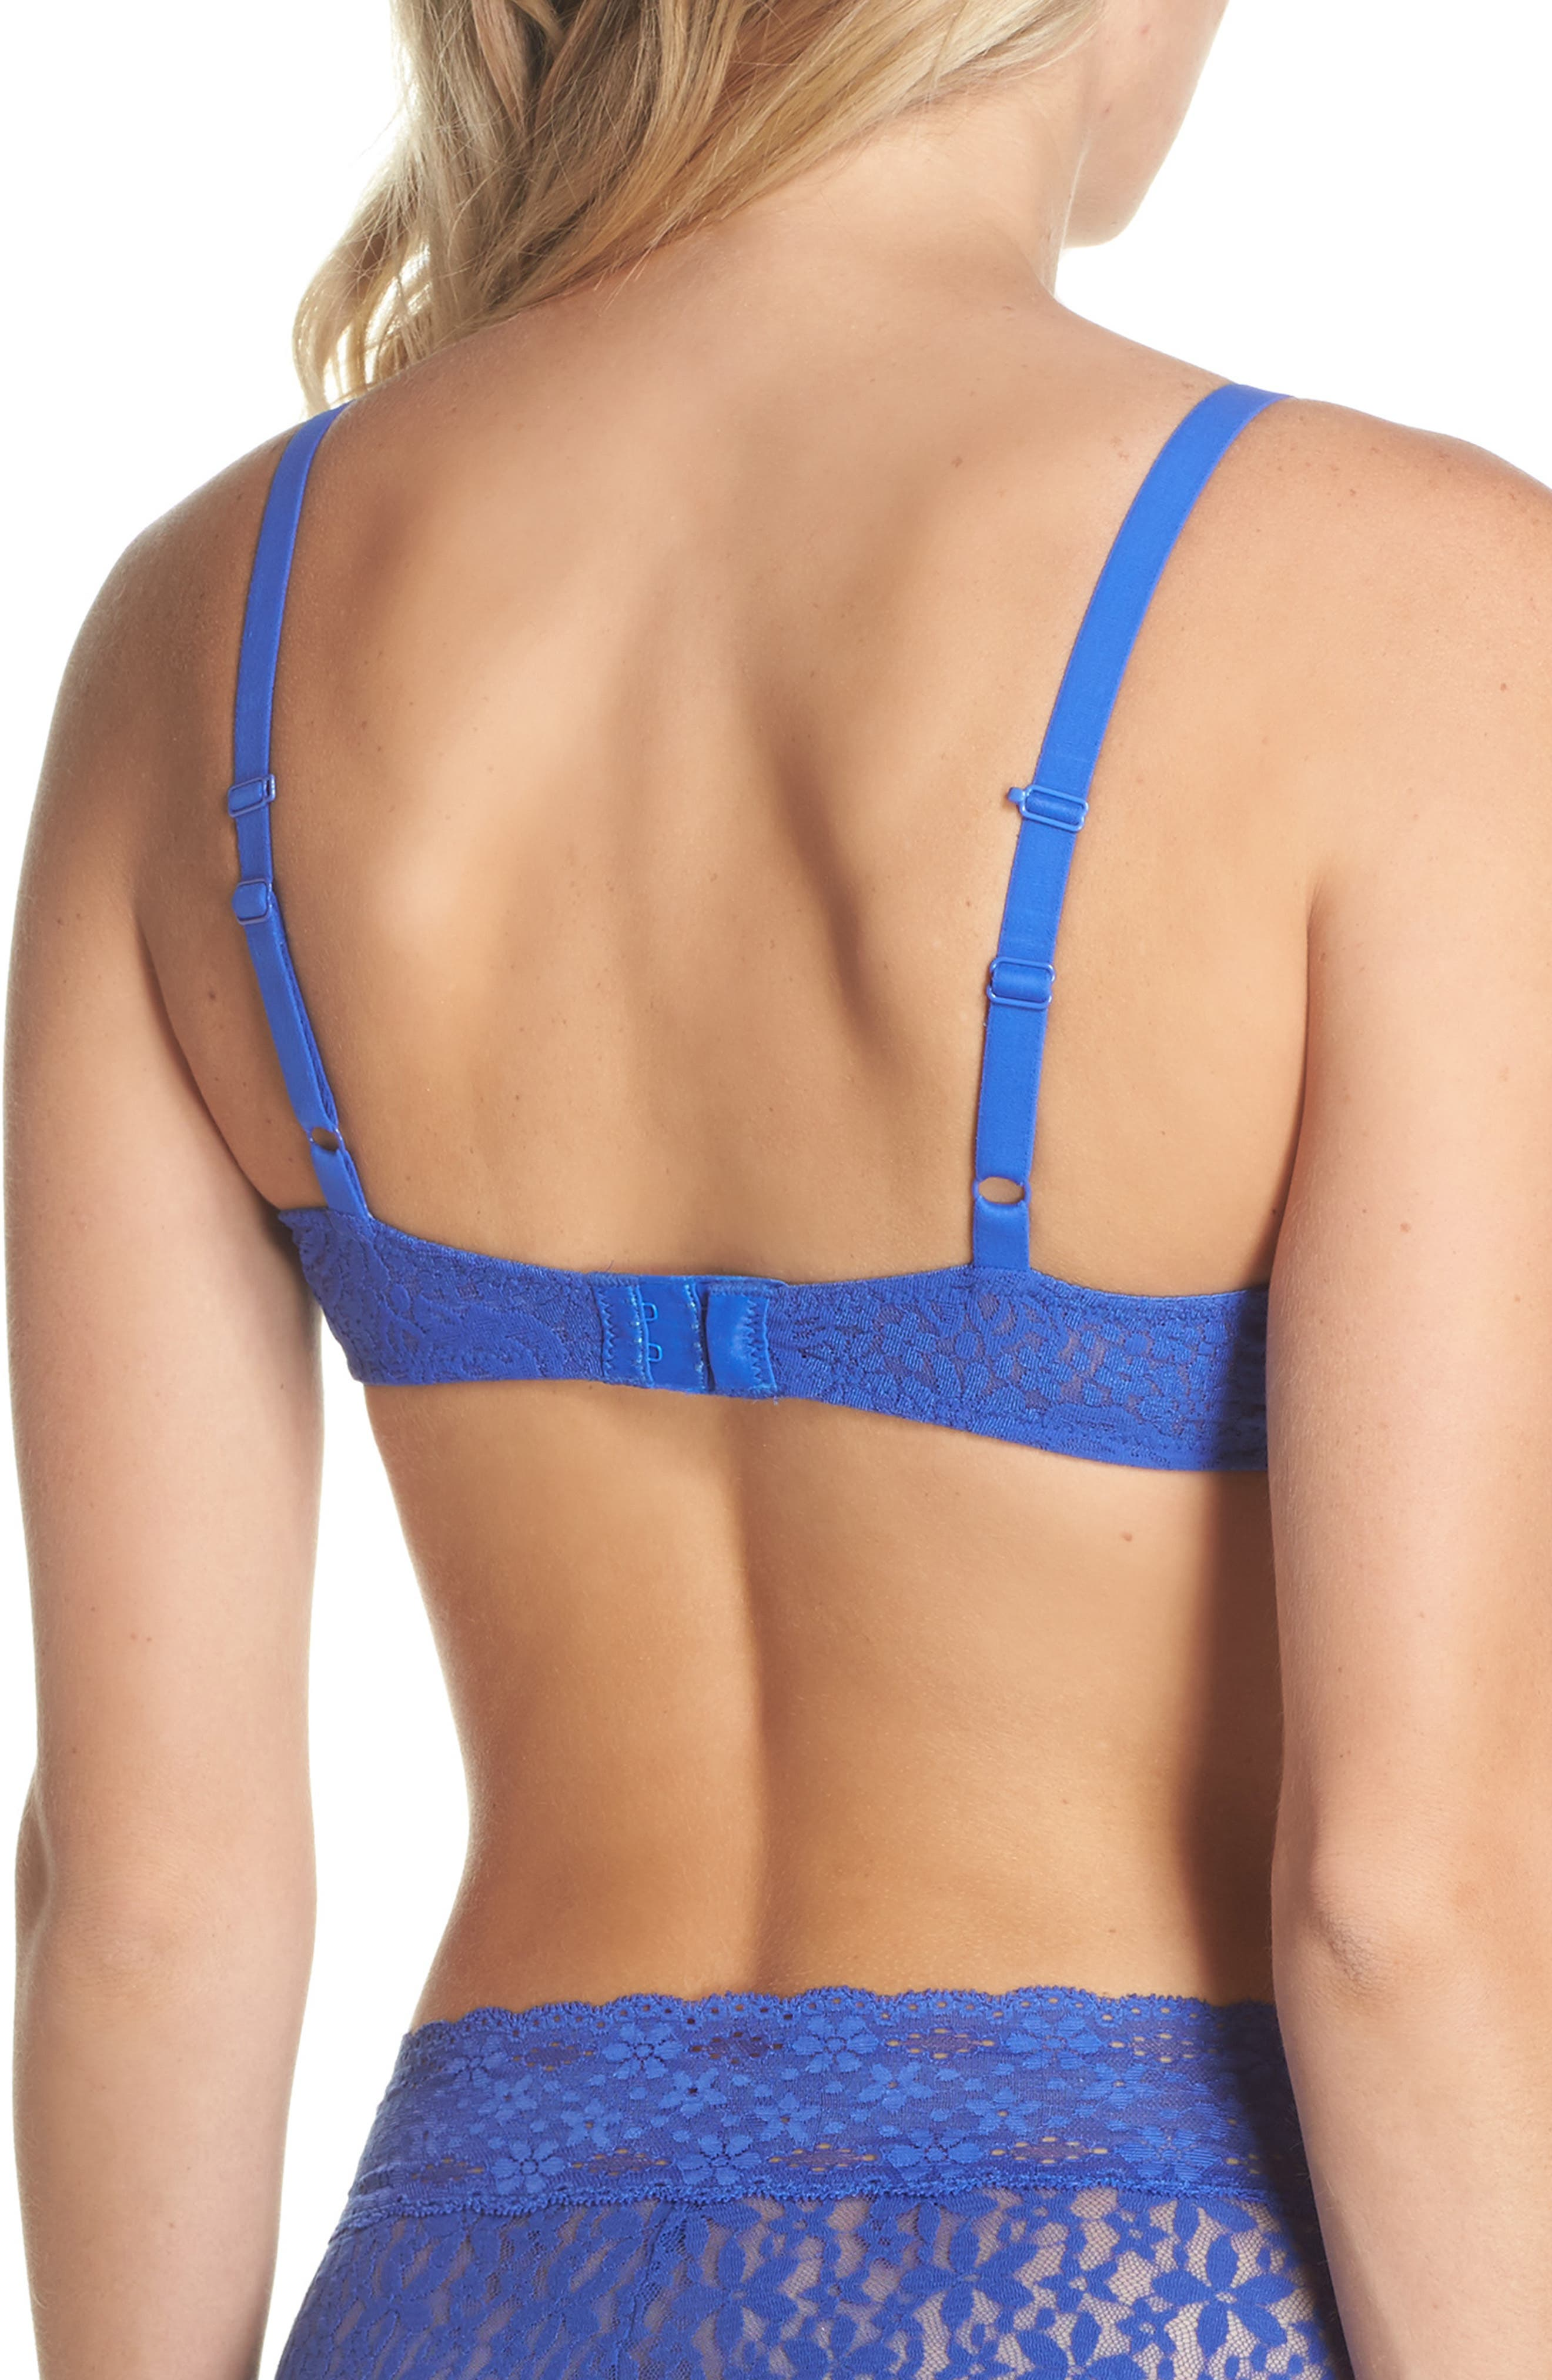 'Halo Lace' Convertible Underwire Bra,                             Alternate thumbnail 2, color,                             Dazzling Blue